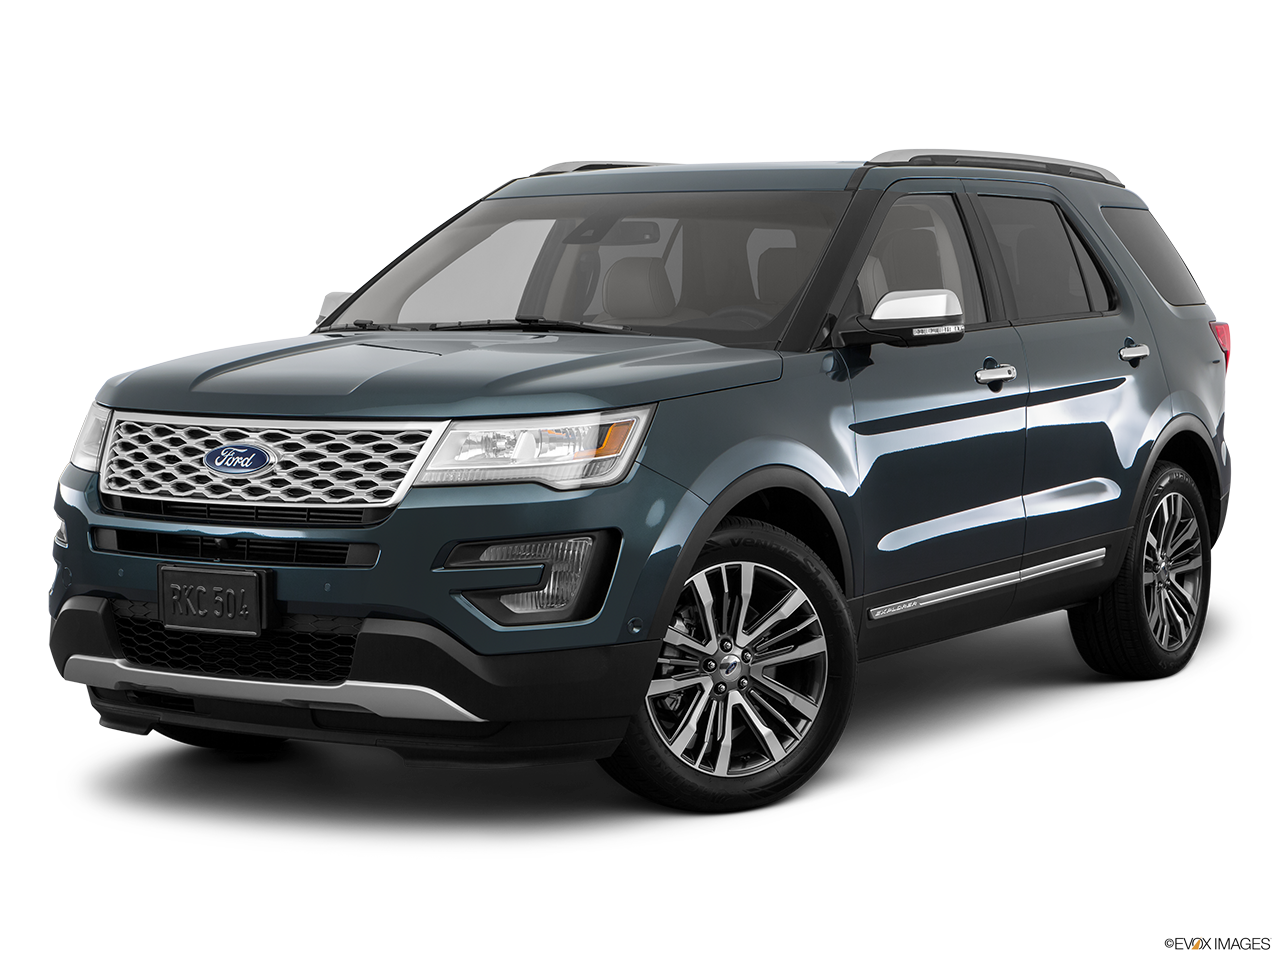 Test Drive A 2017 Ford Explorer at All Star Ford Canton in Canton